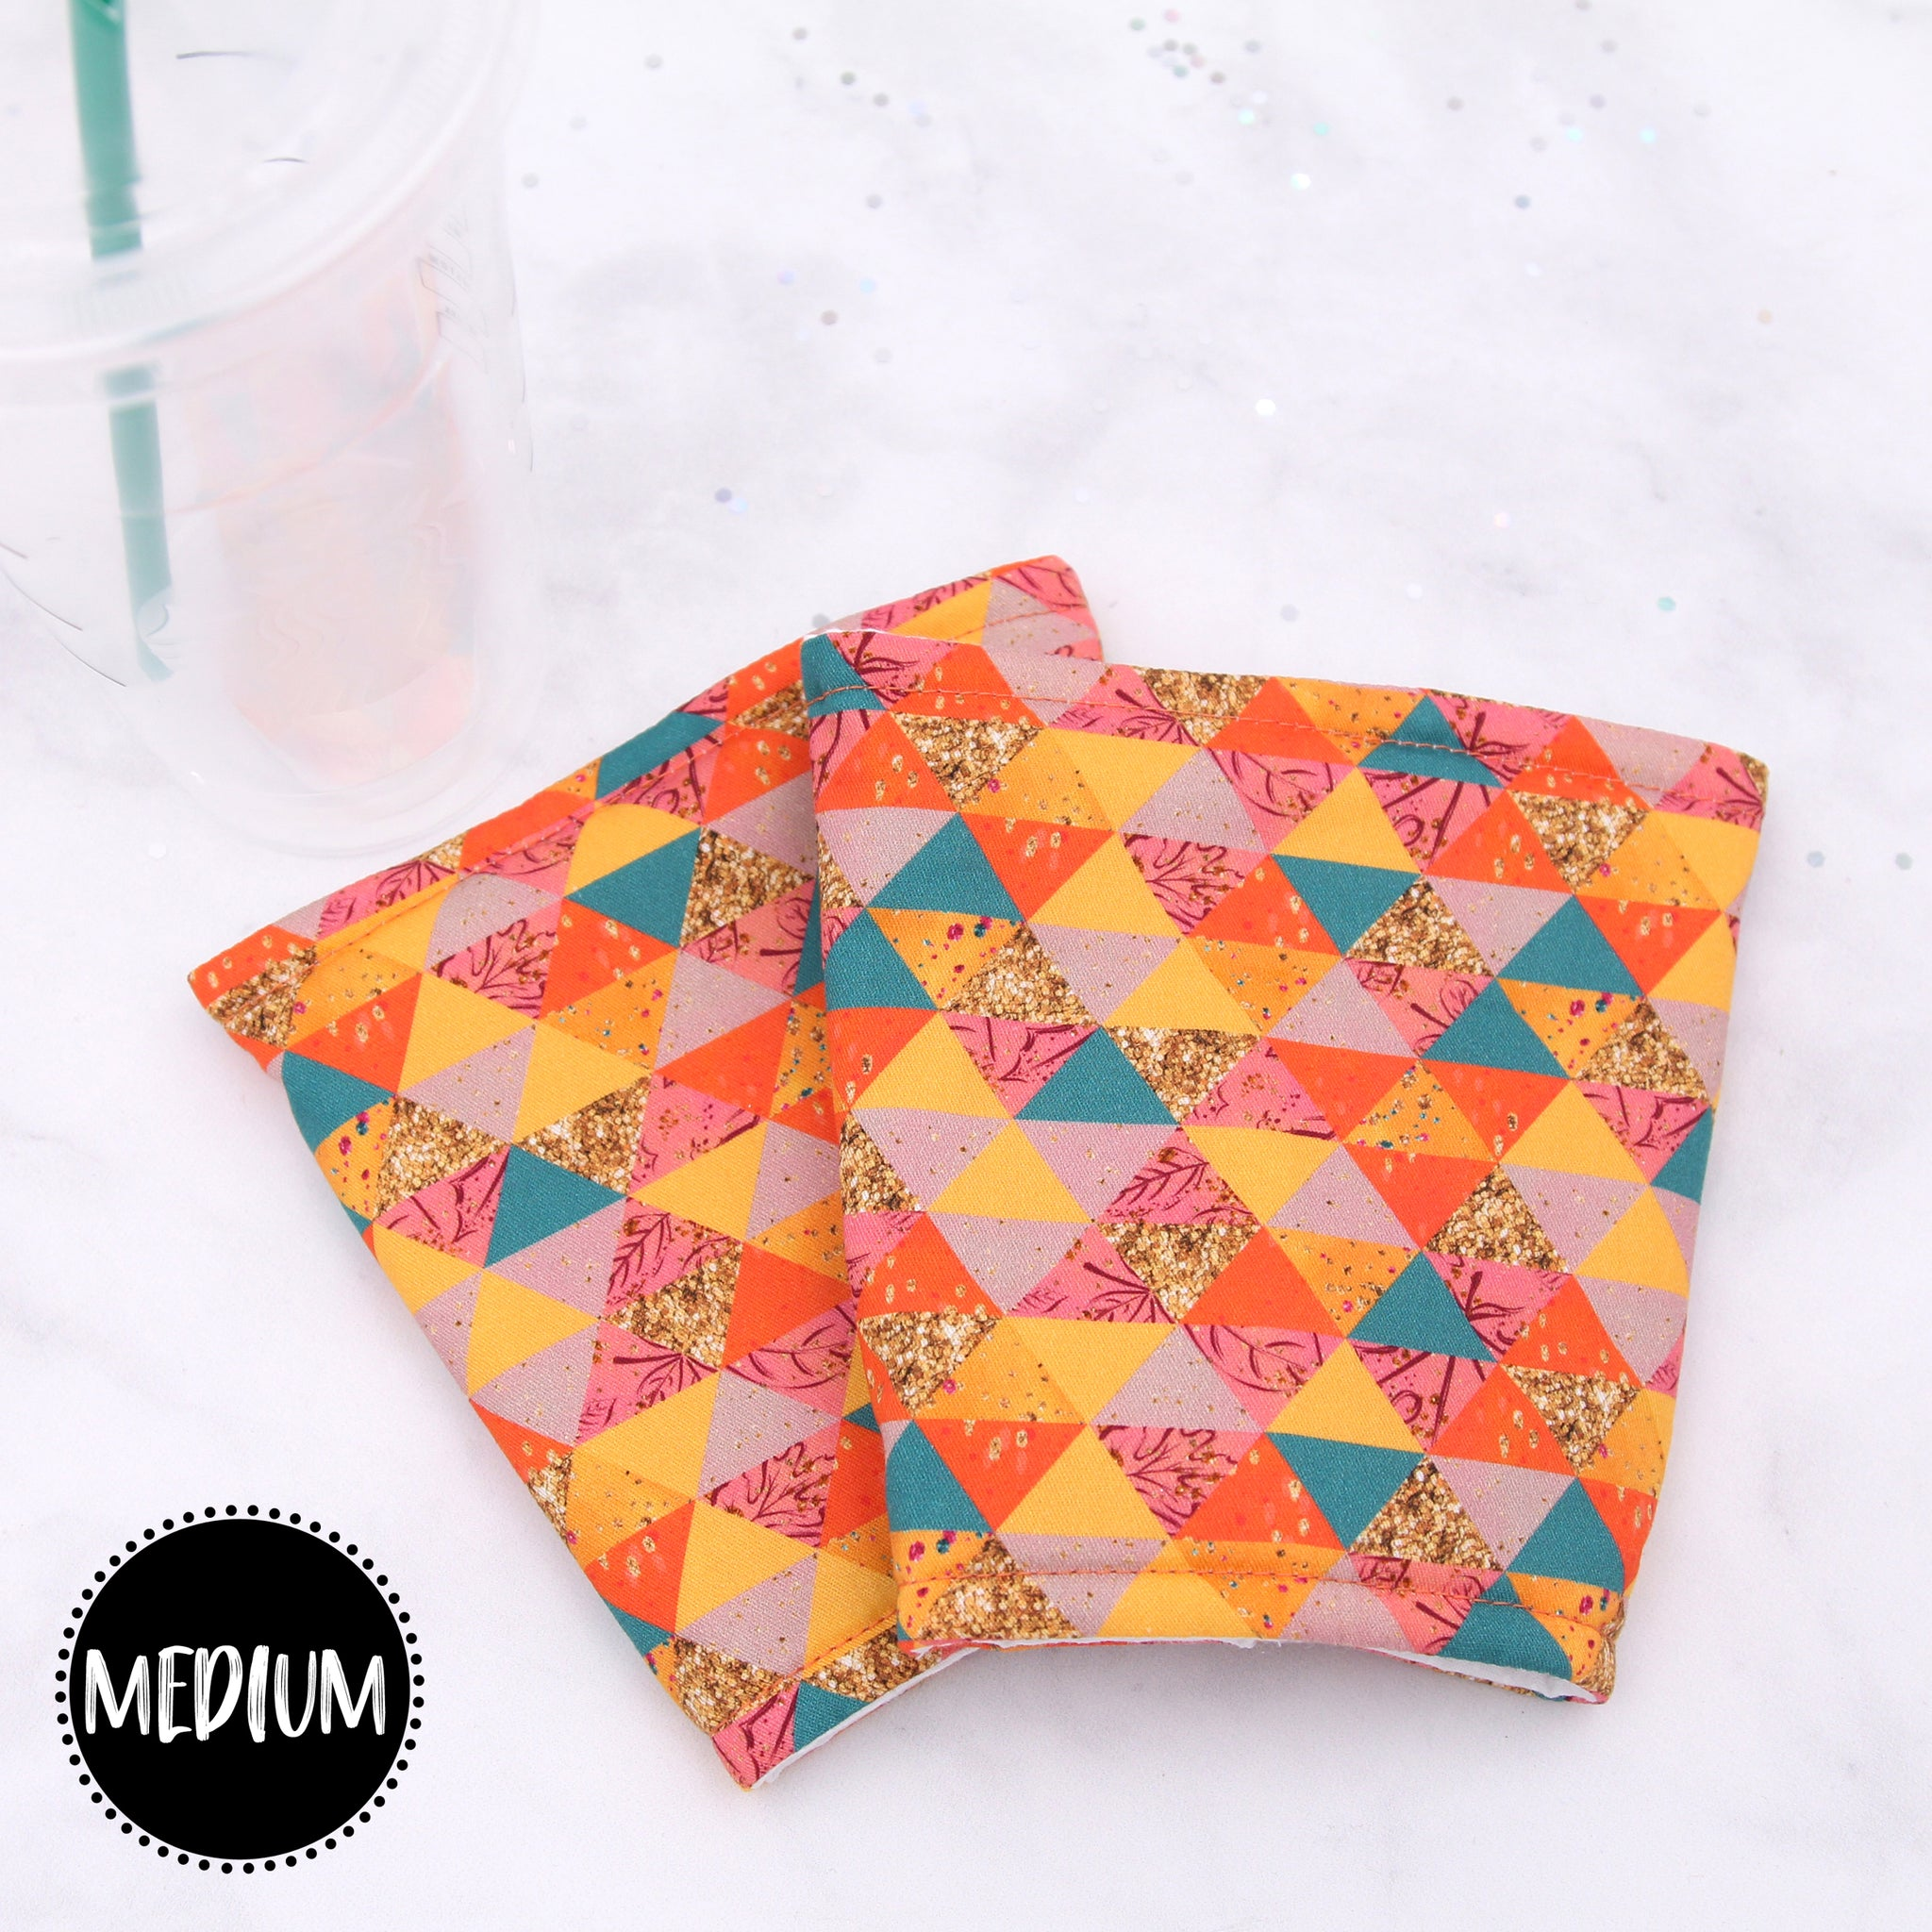 MEDIUM - Fall Triangles Insulated Coffee Sleeve